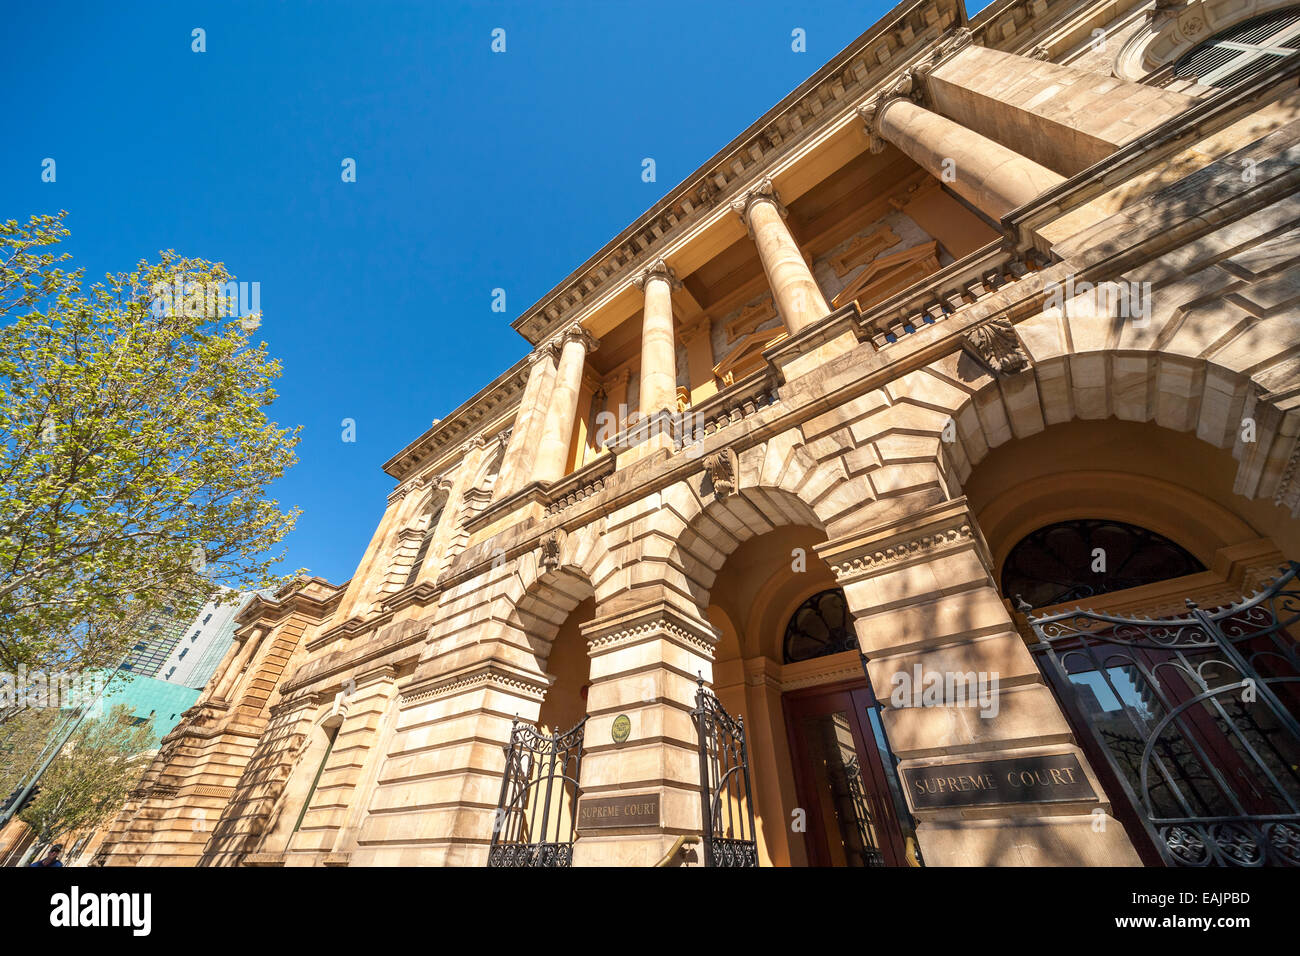 Supreme Court of South Australia building in Adelaide Victoria Square. Facade; front entrance with sign. - Stock Image